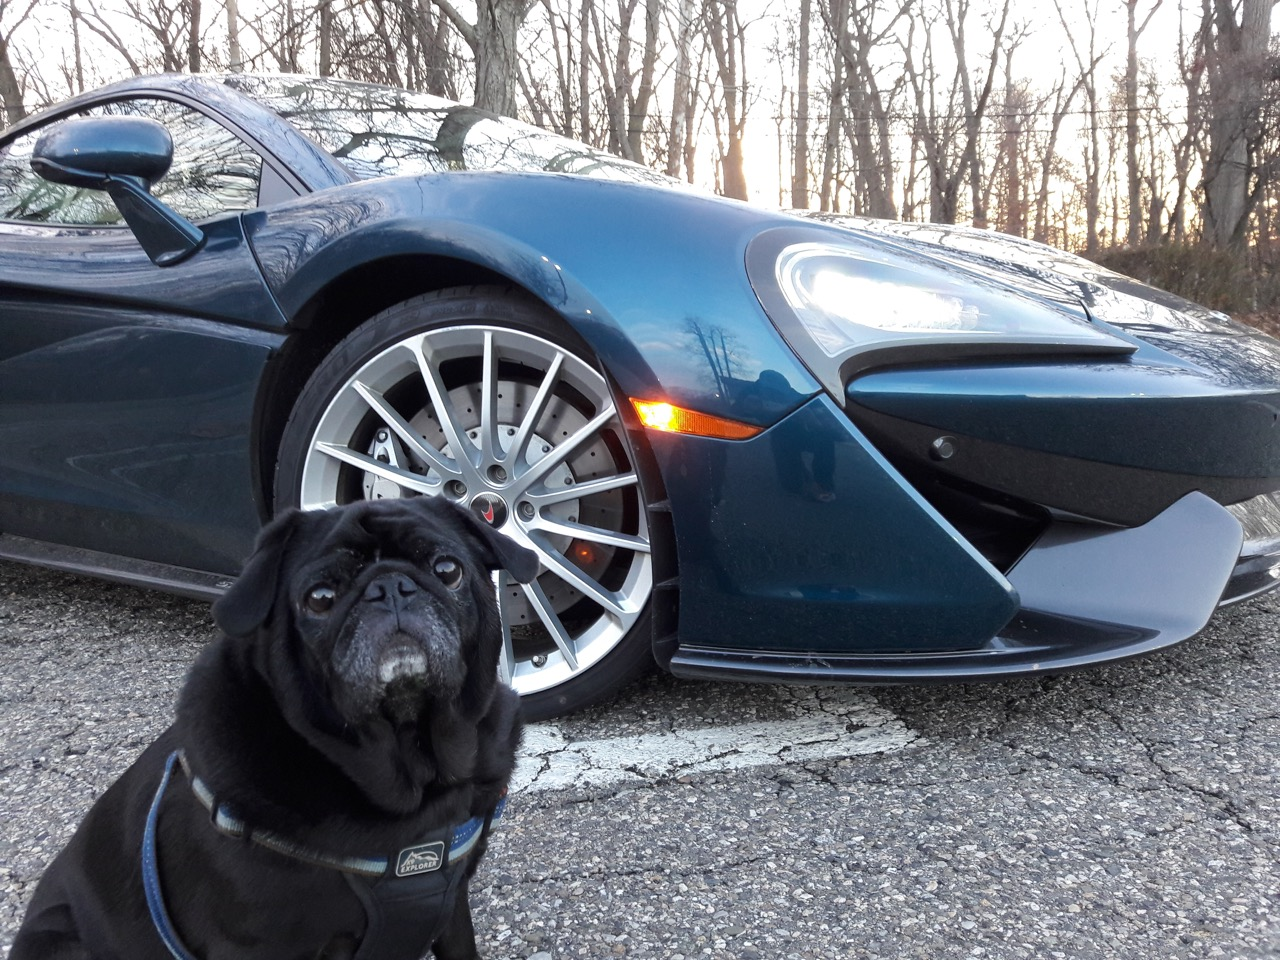 Merlin and the McLaren | Nick Kurczewski photos